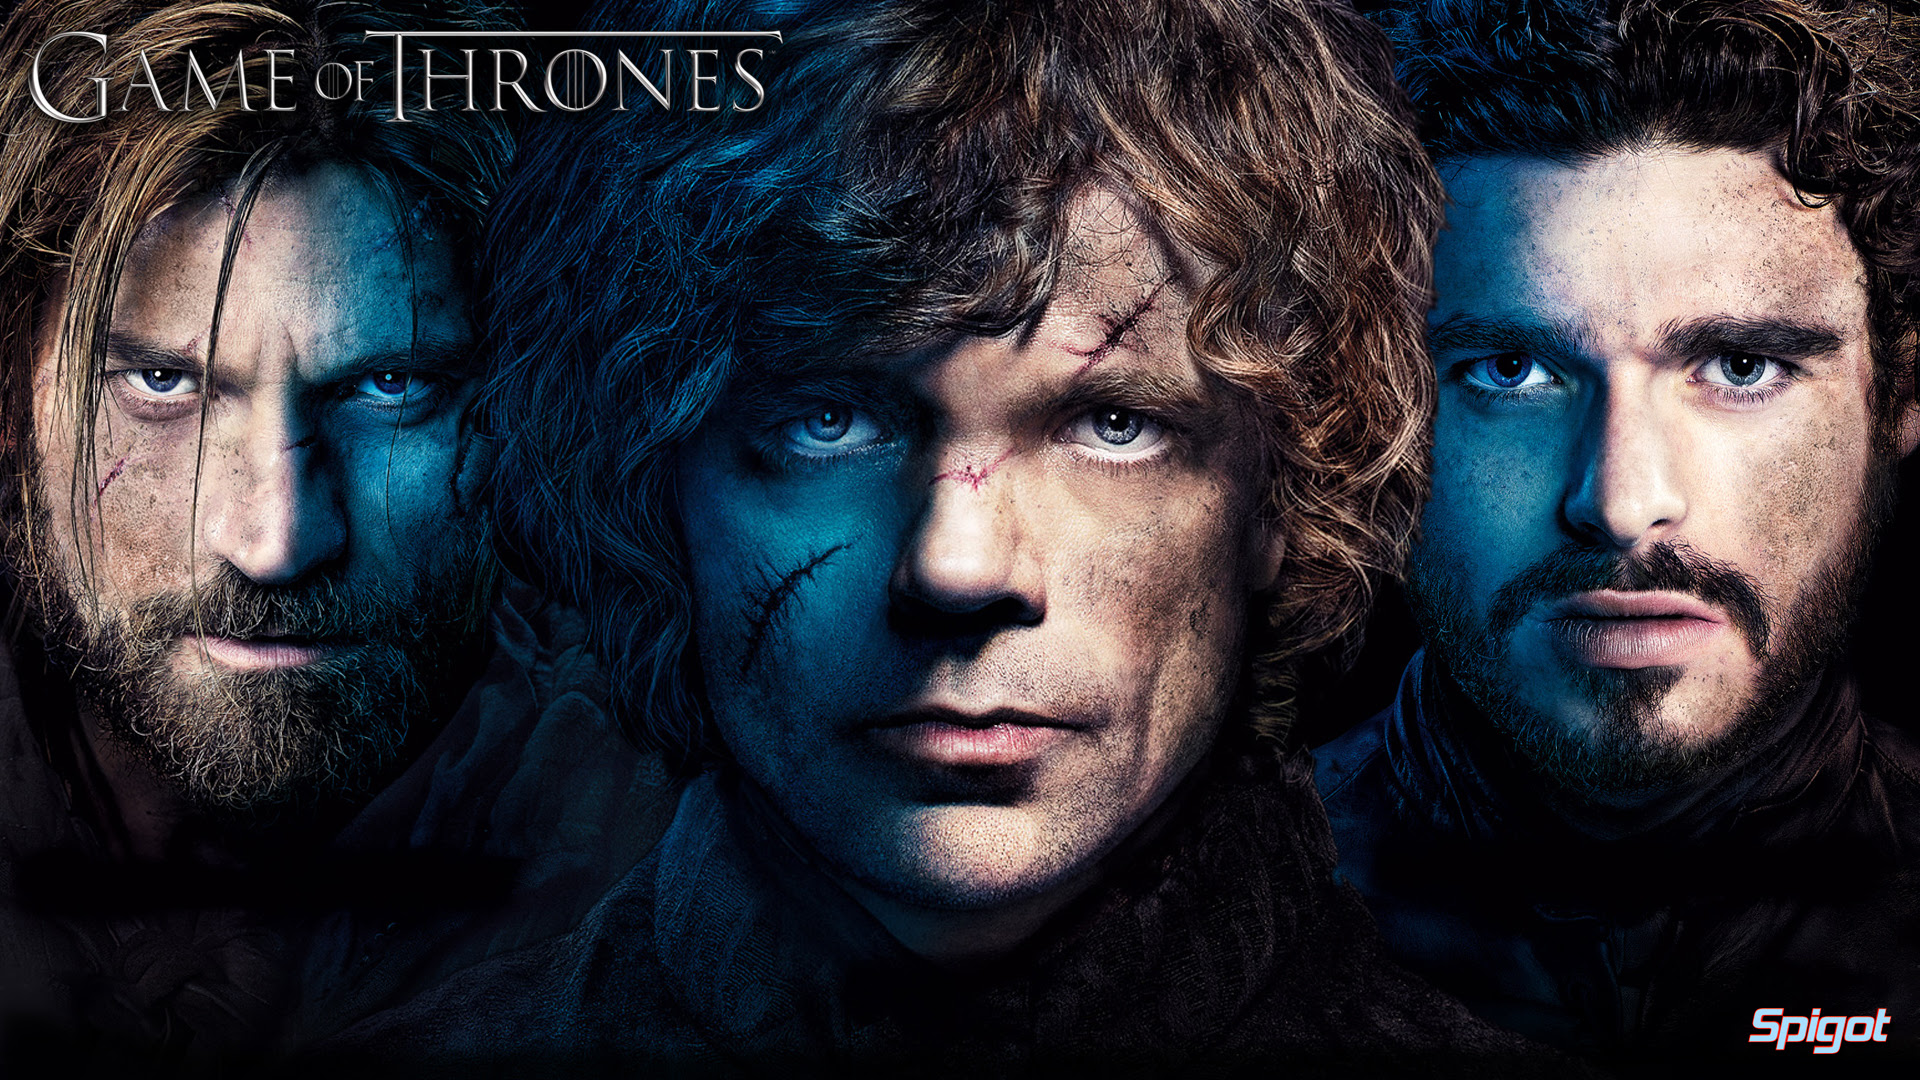 Game Of Thrones Game Of Thrones Wallpaper 38503514 Fanpop